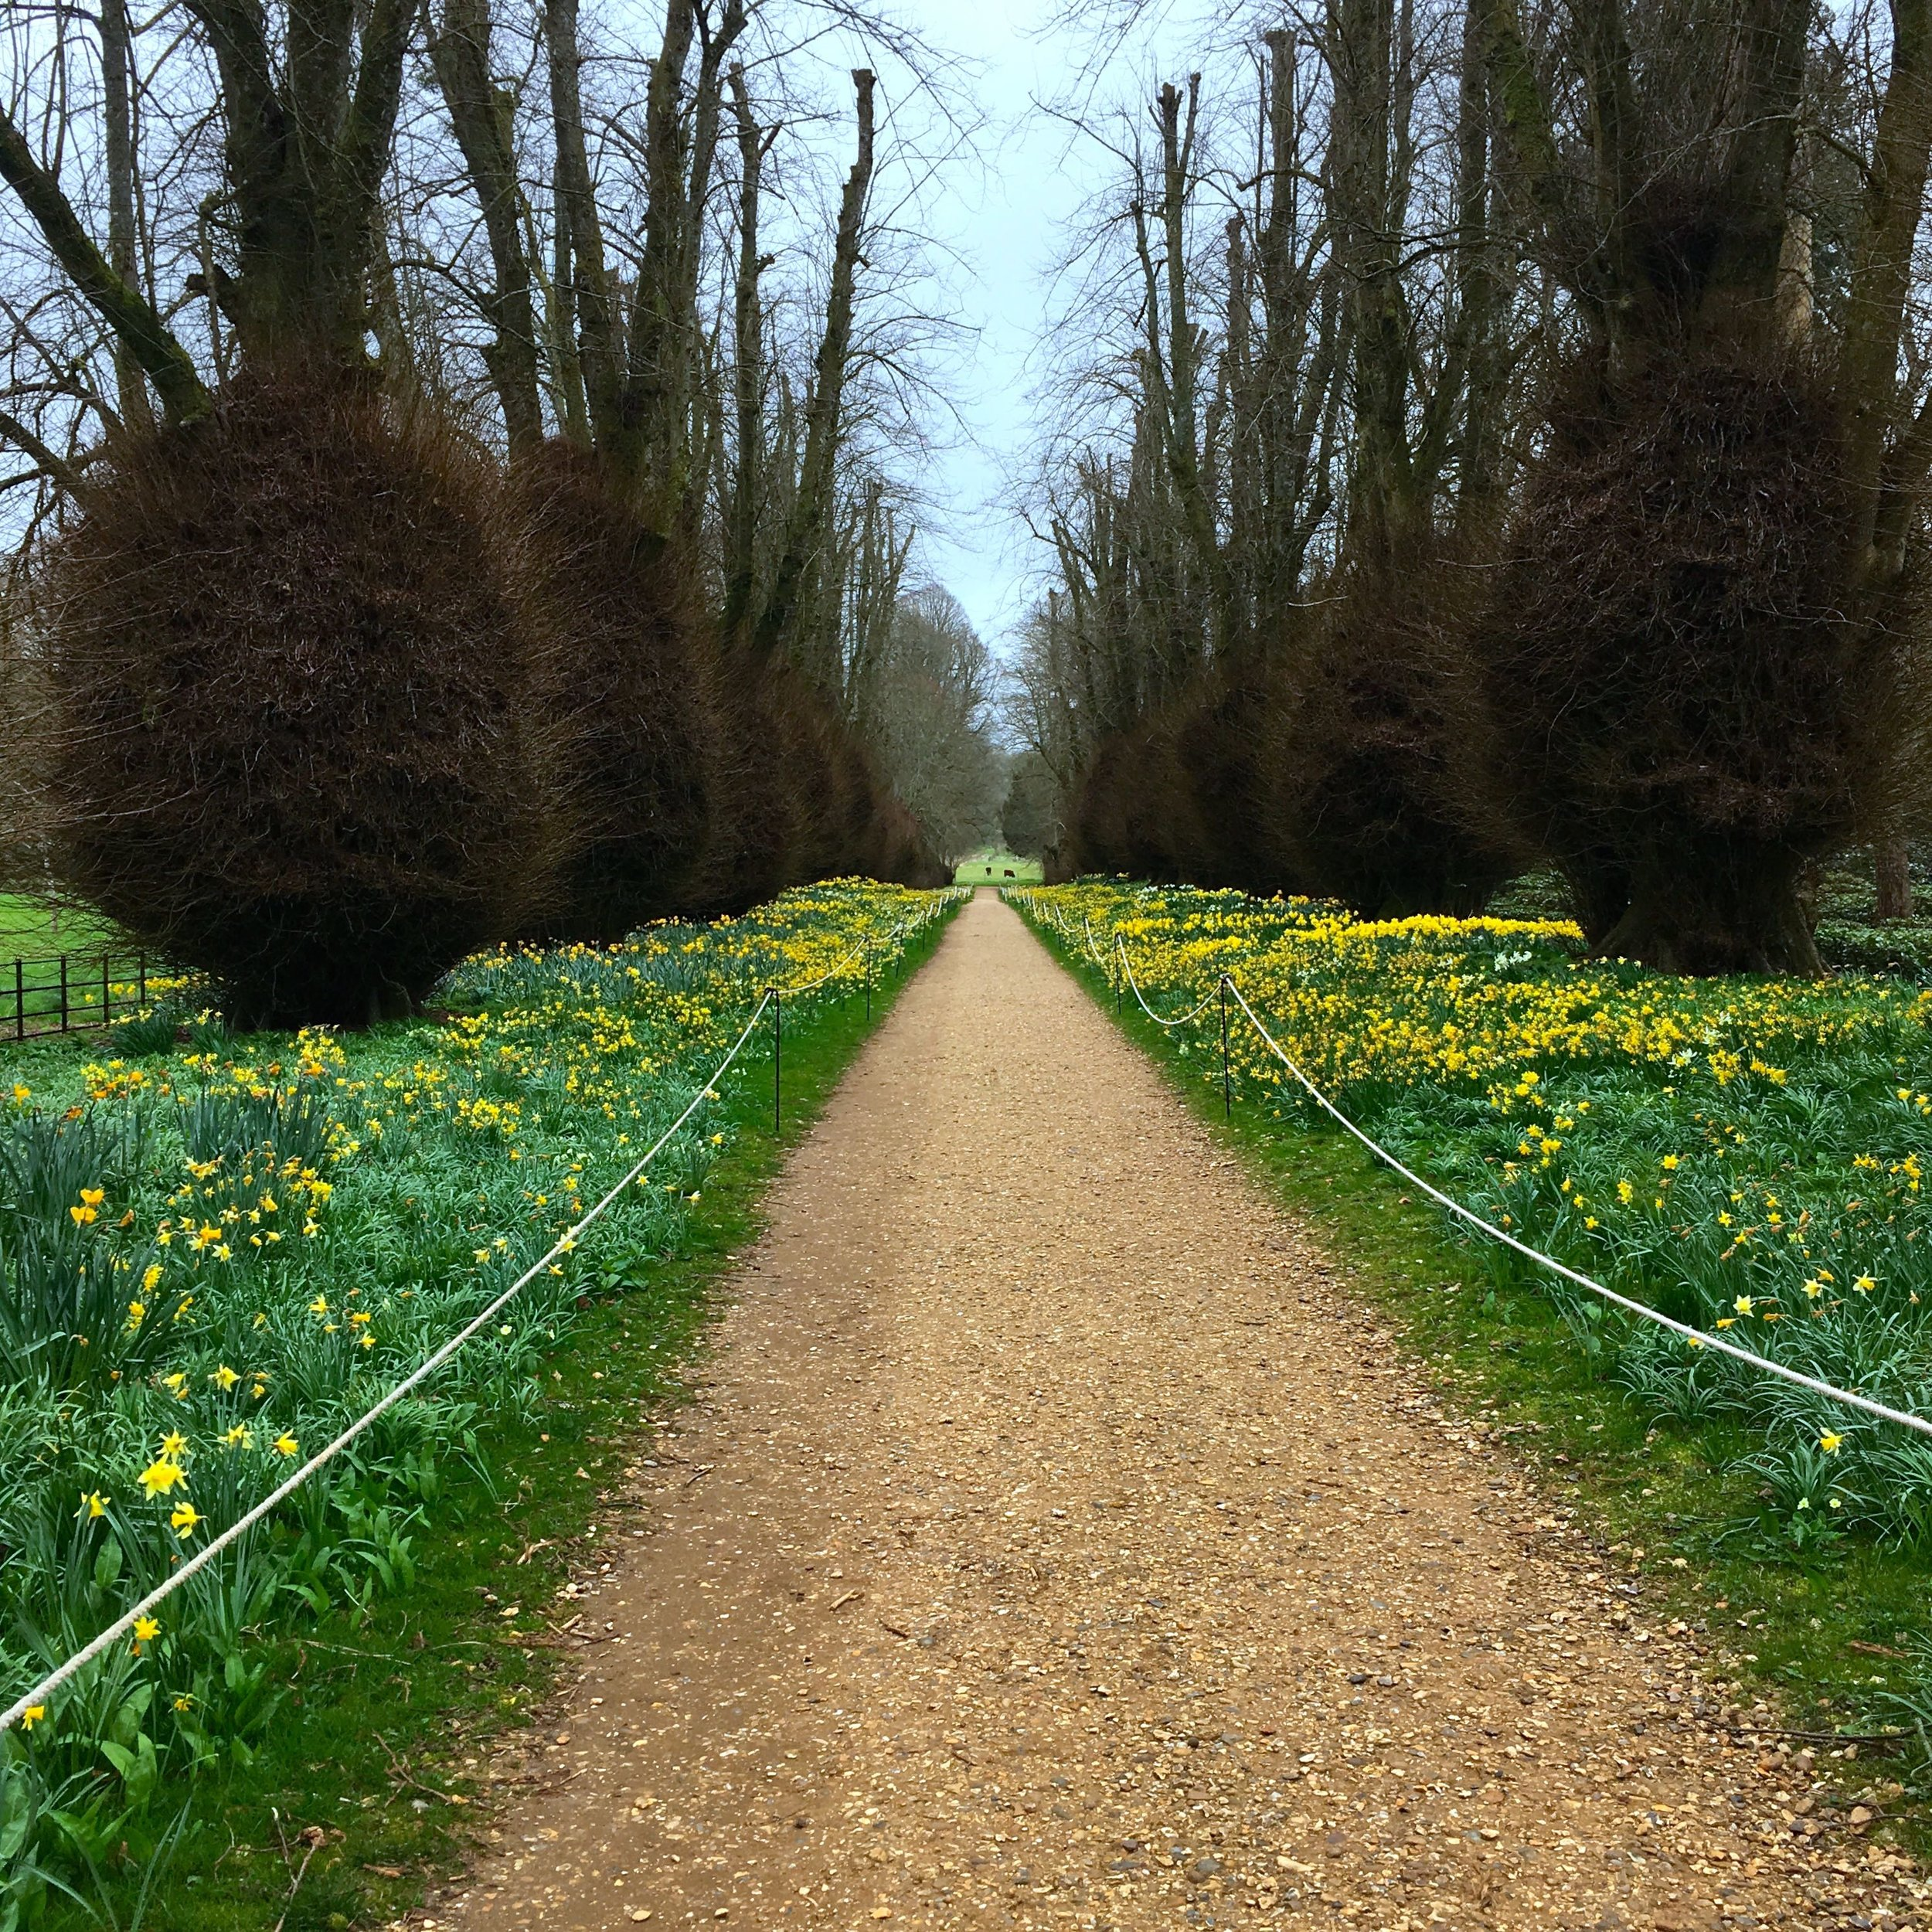 Quite a view of the Lime Avenue at Kingtson Lacy in Dorset